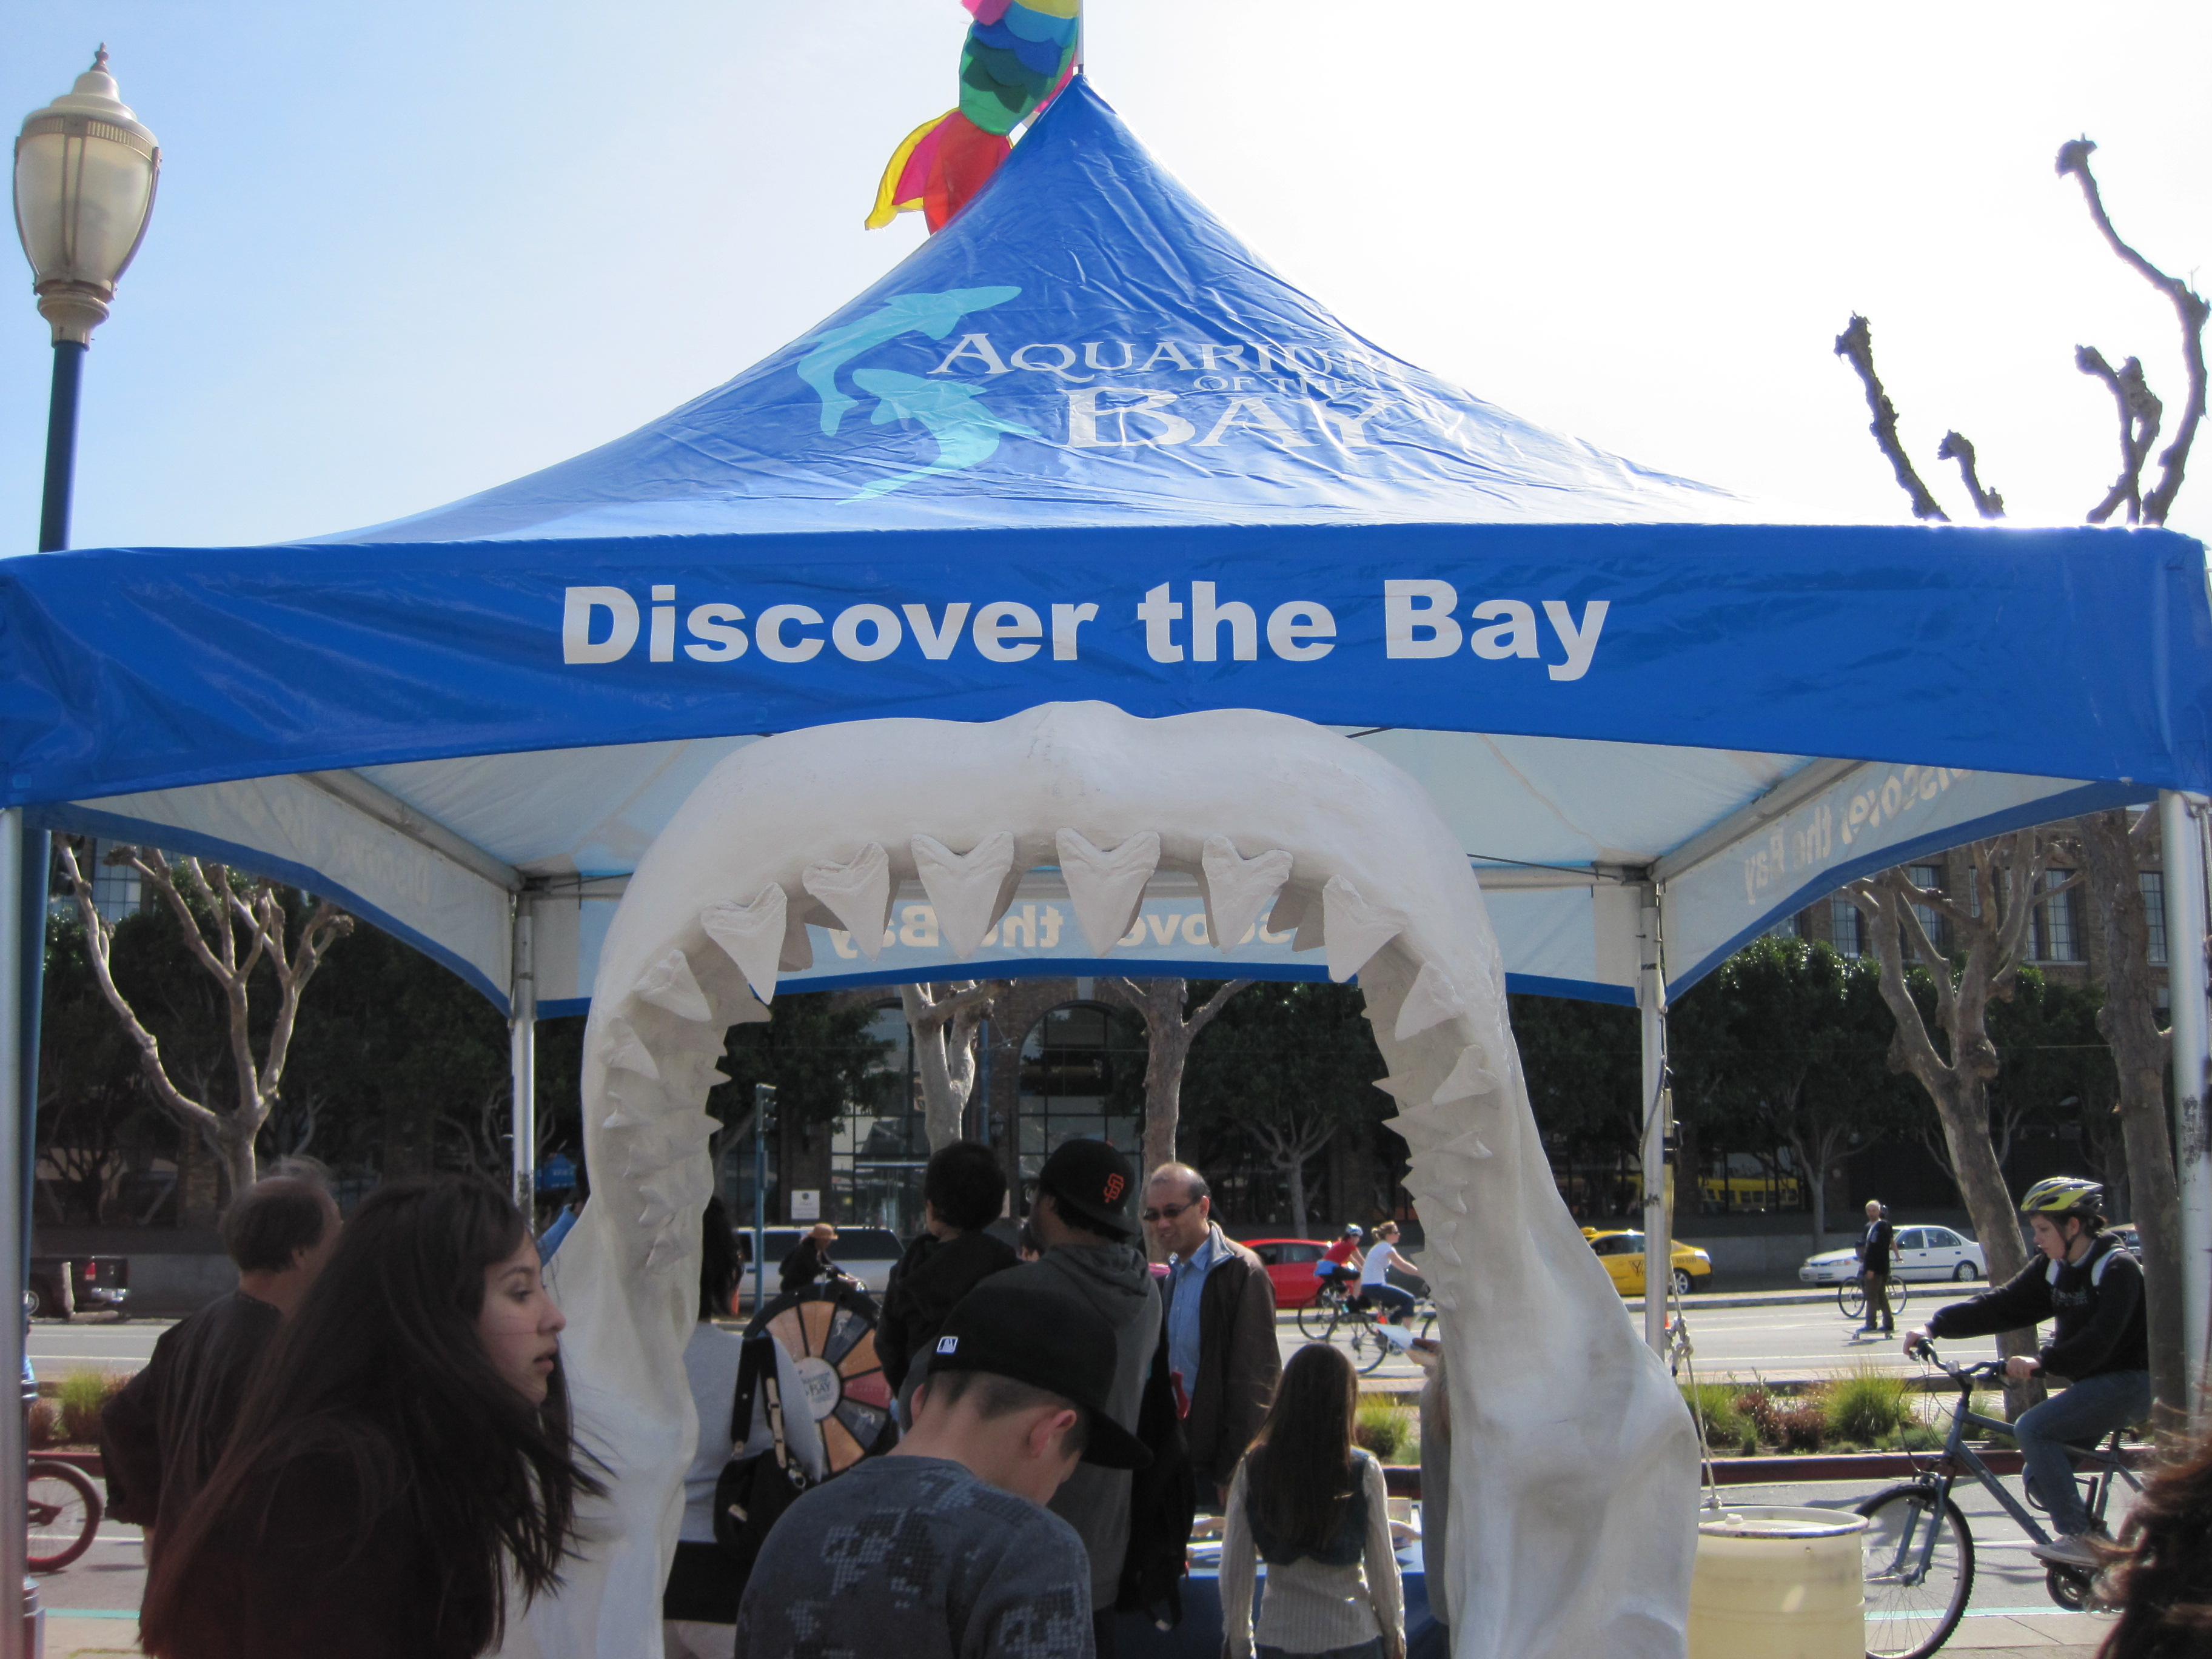 Aquarium of the bay coupons discount